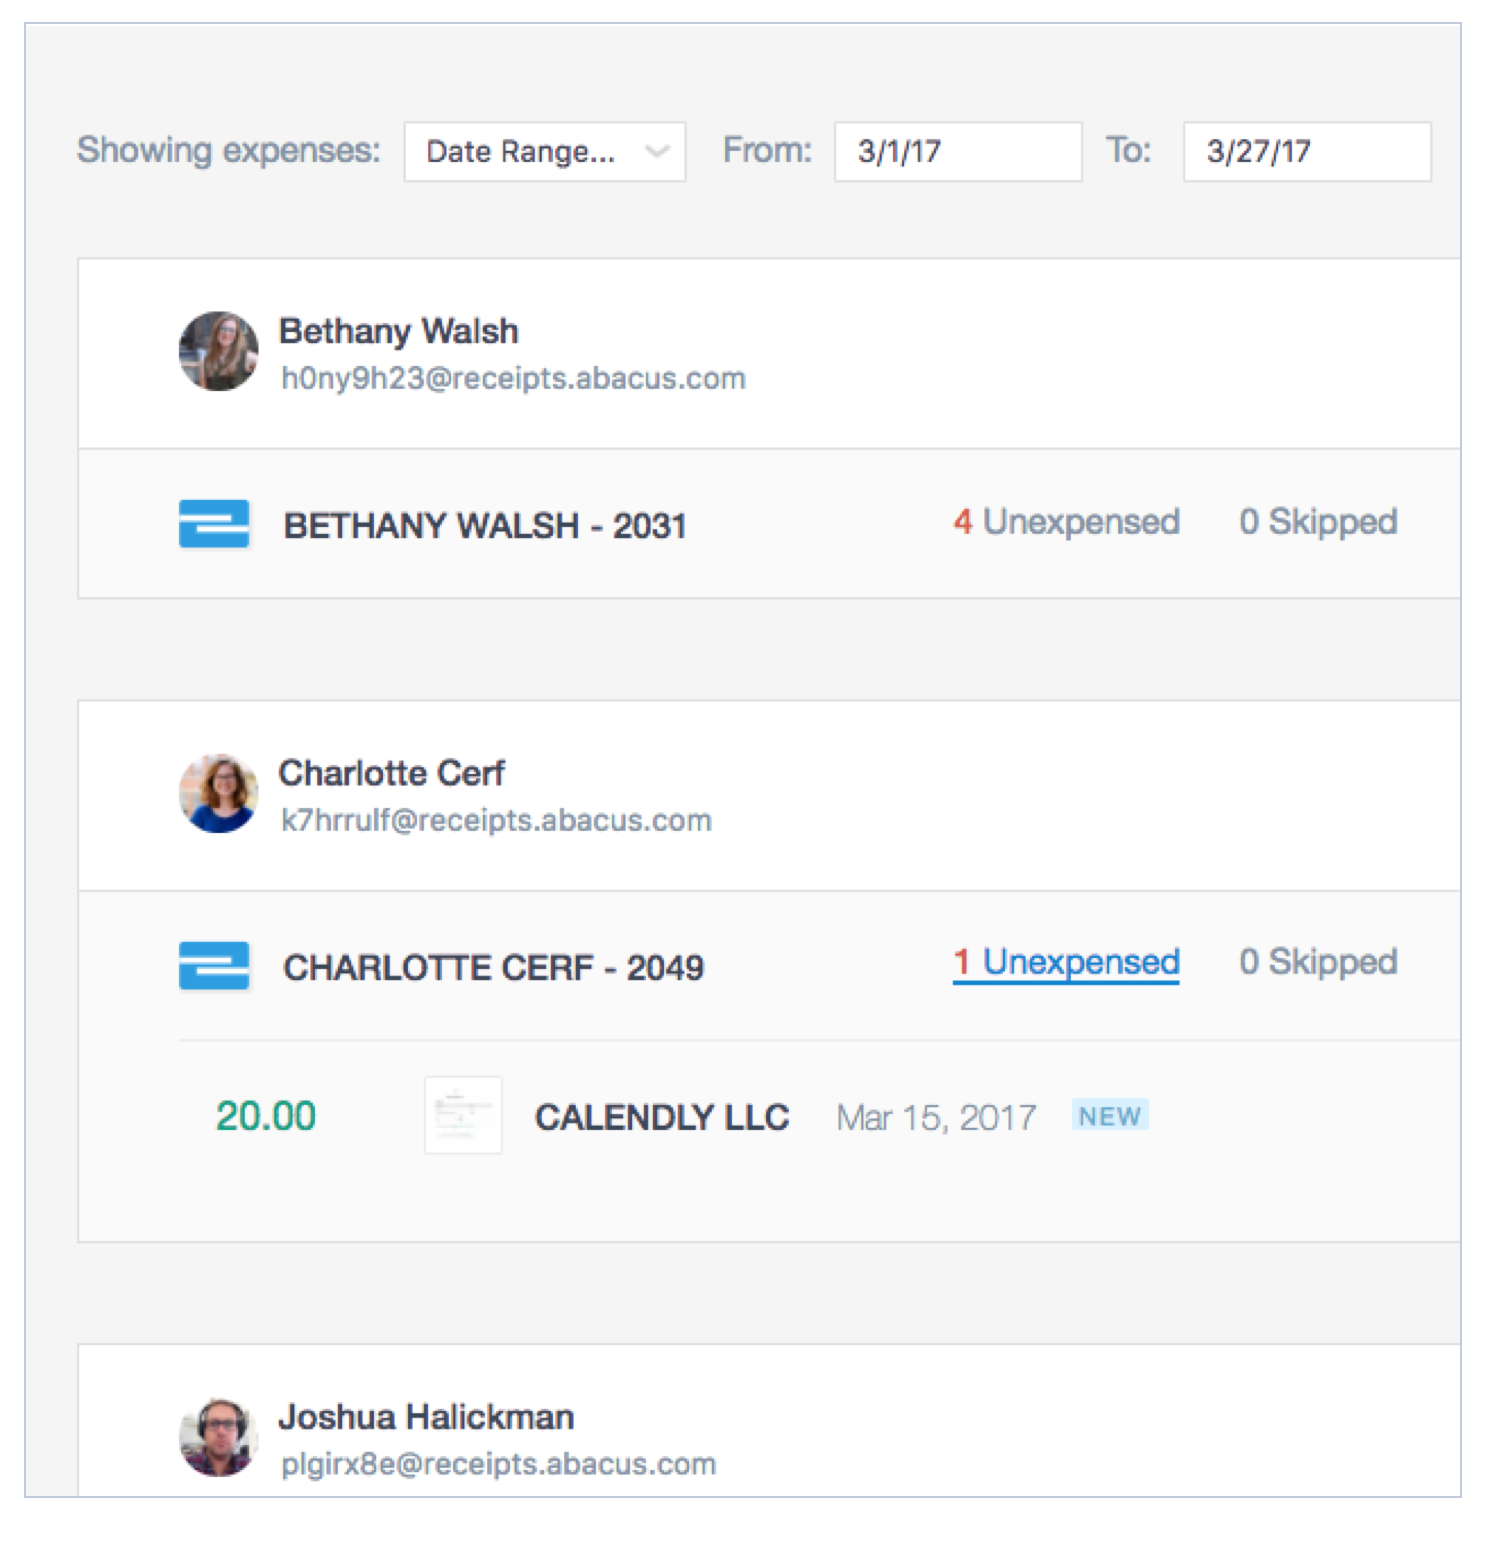 sage expense reporting software